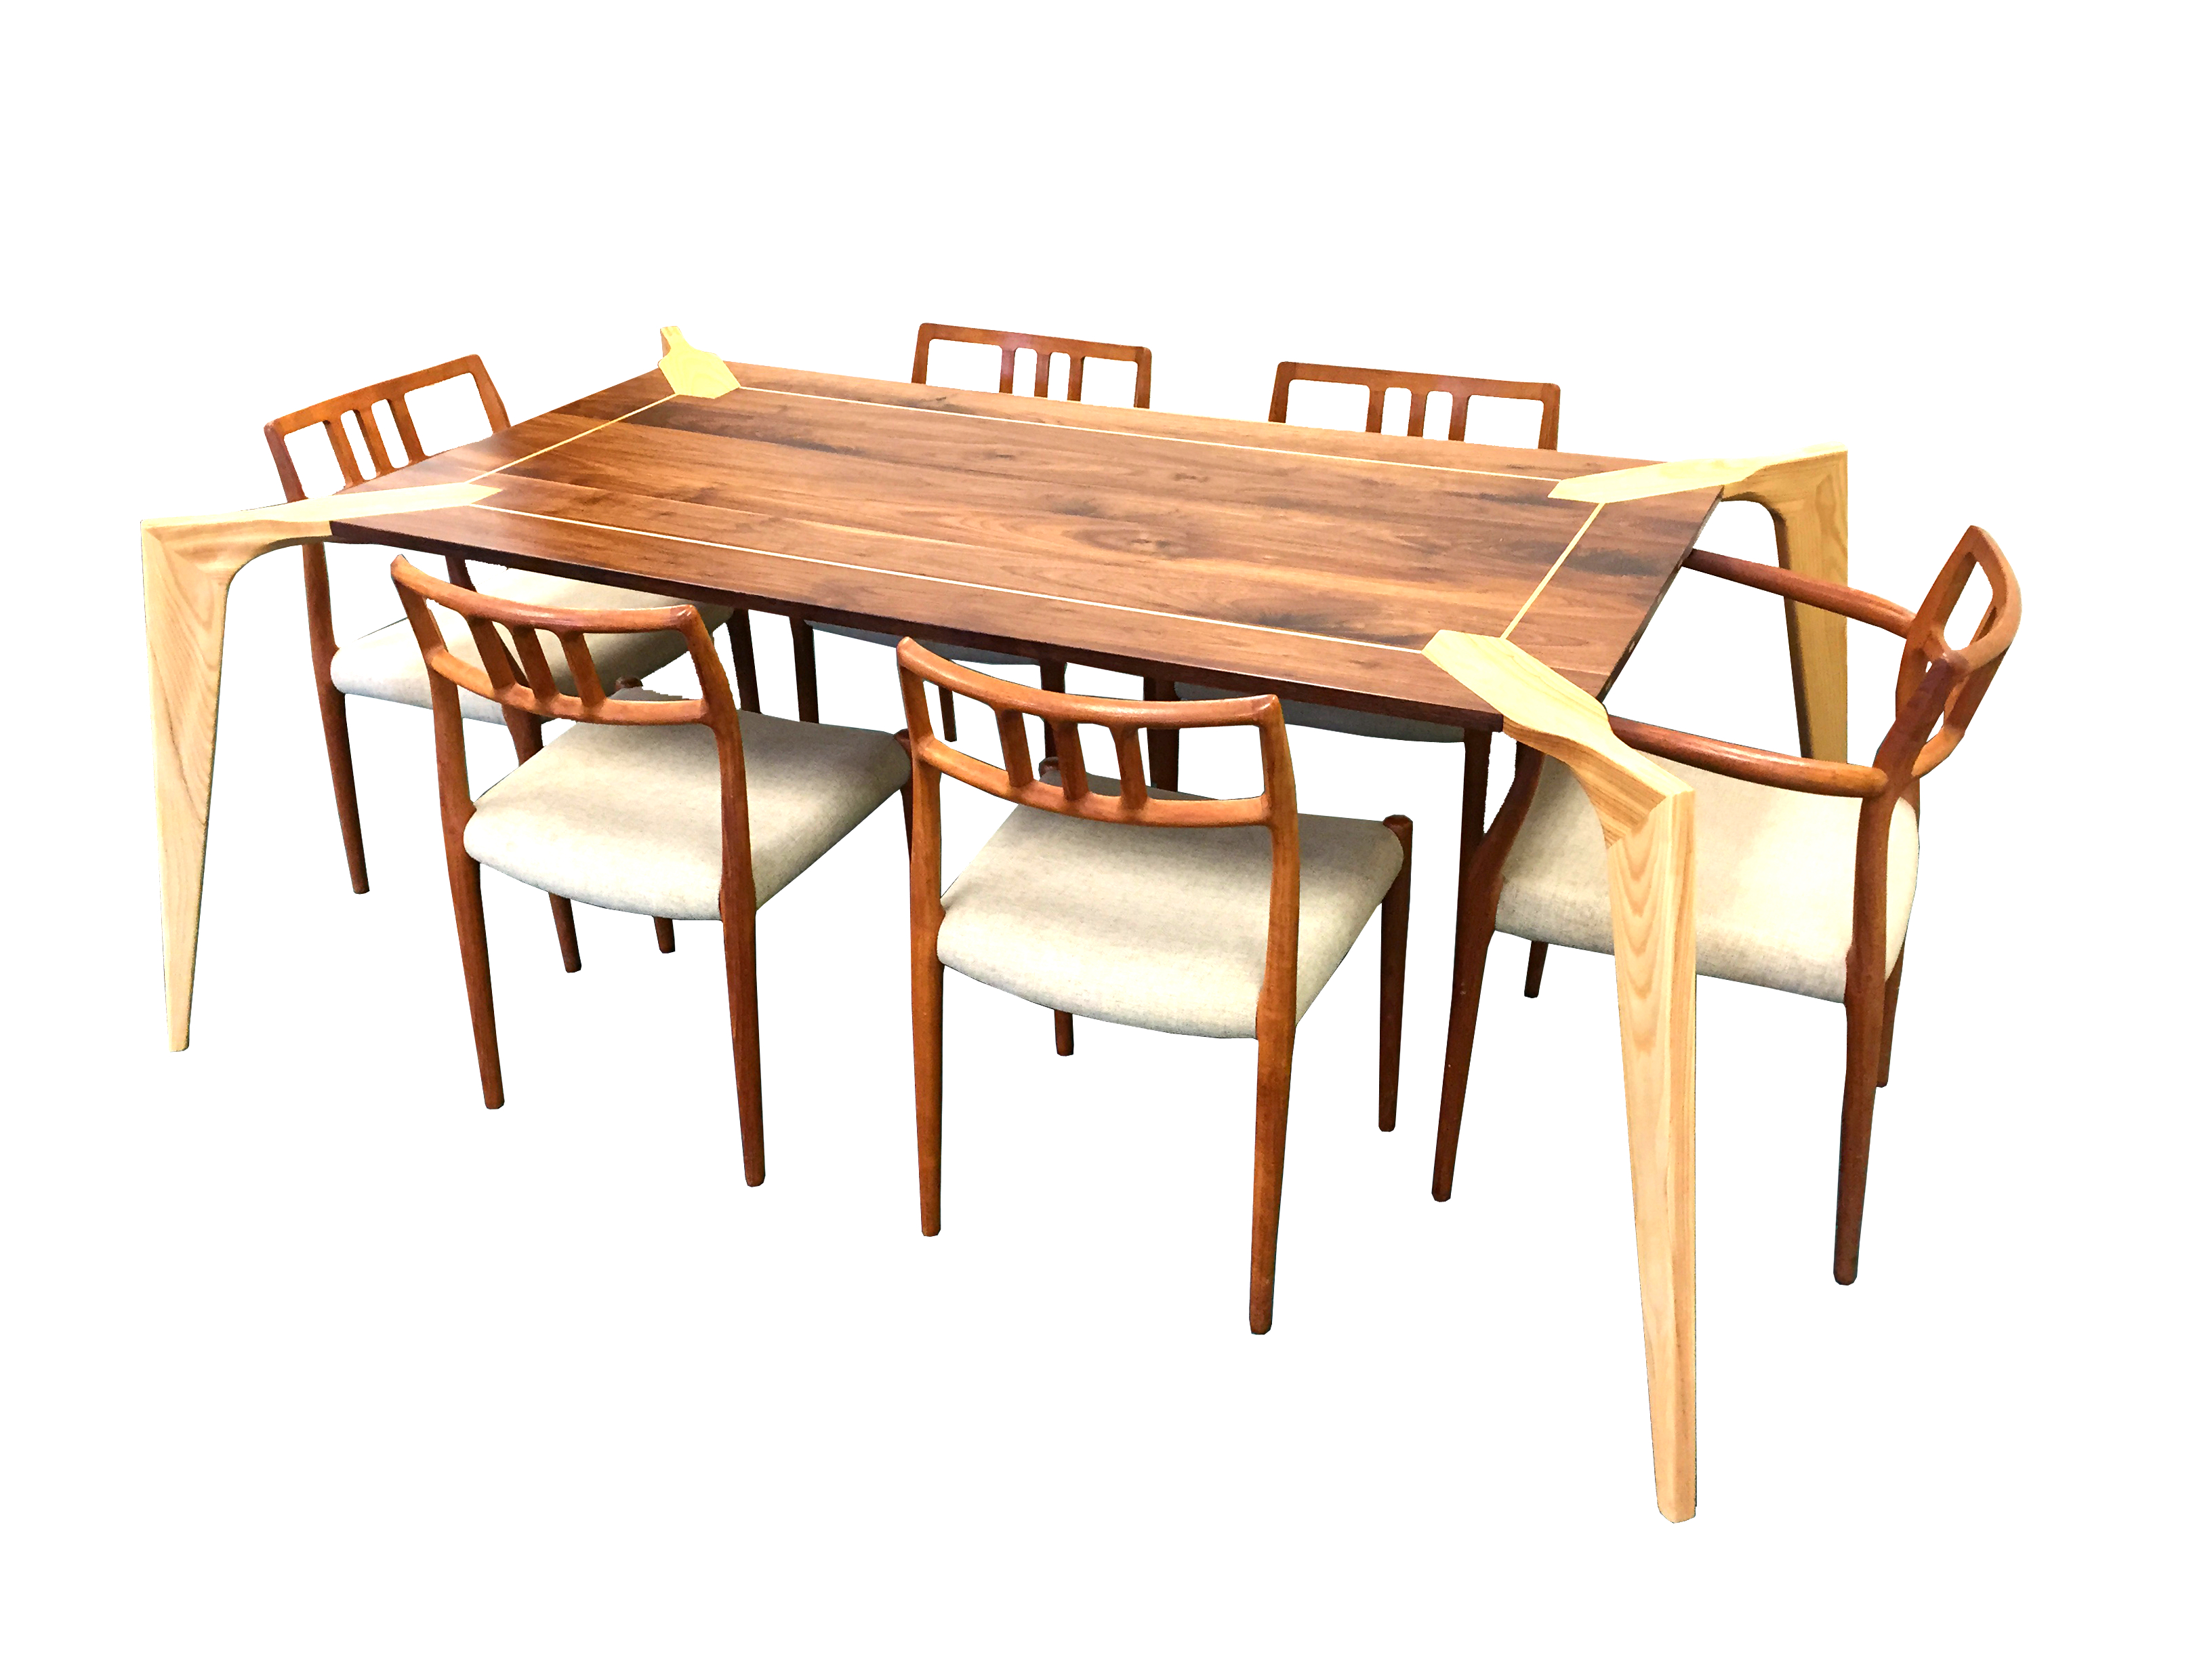 Joint Effort Studio Kipp Table Axon w Chairs_F.jpg